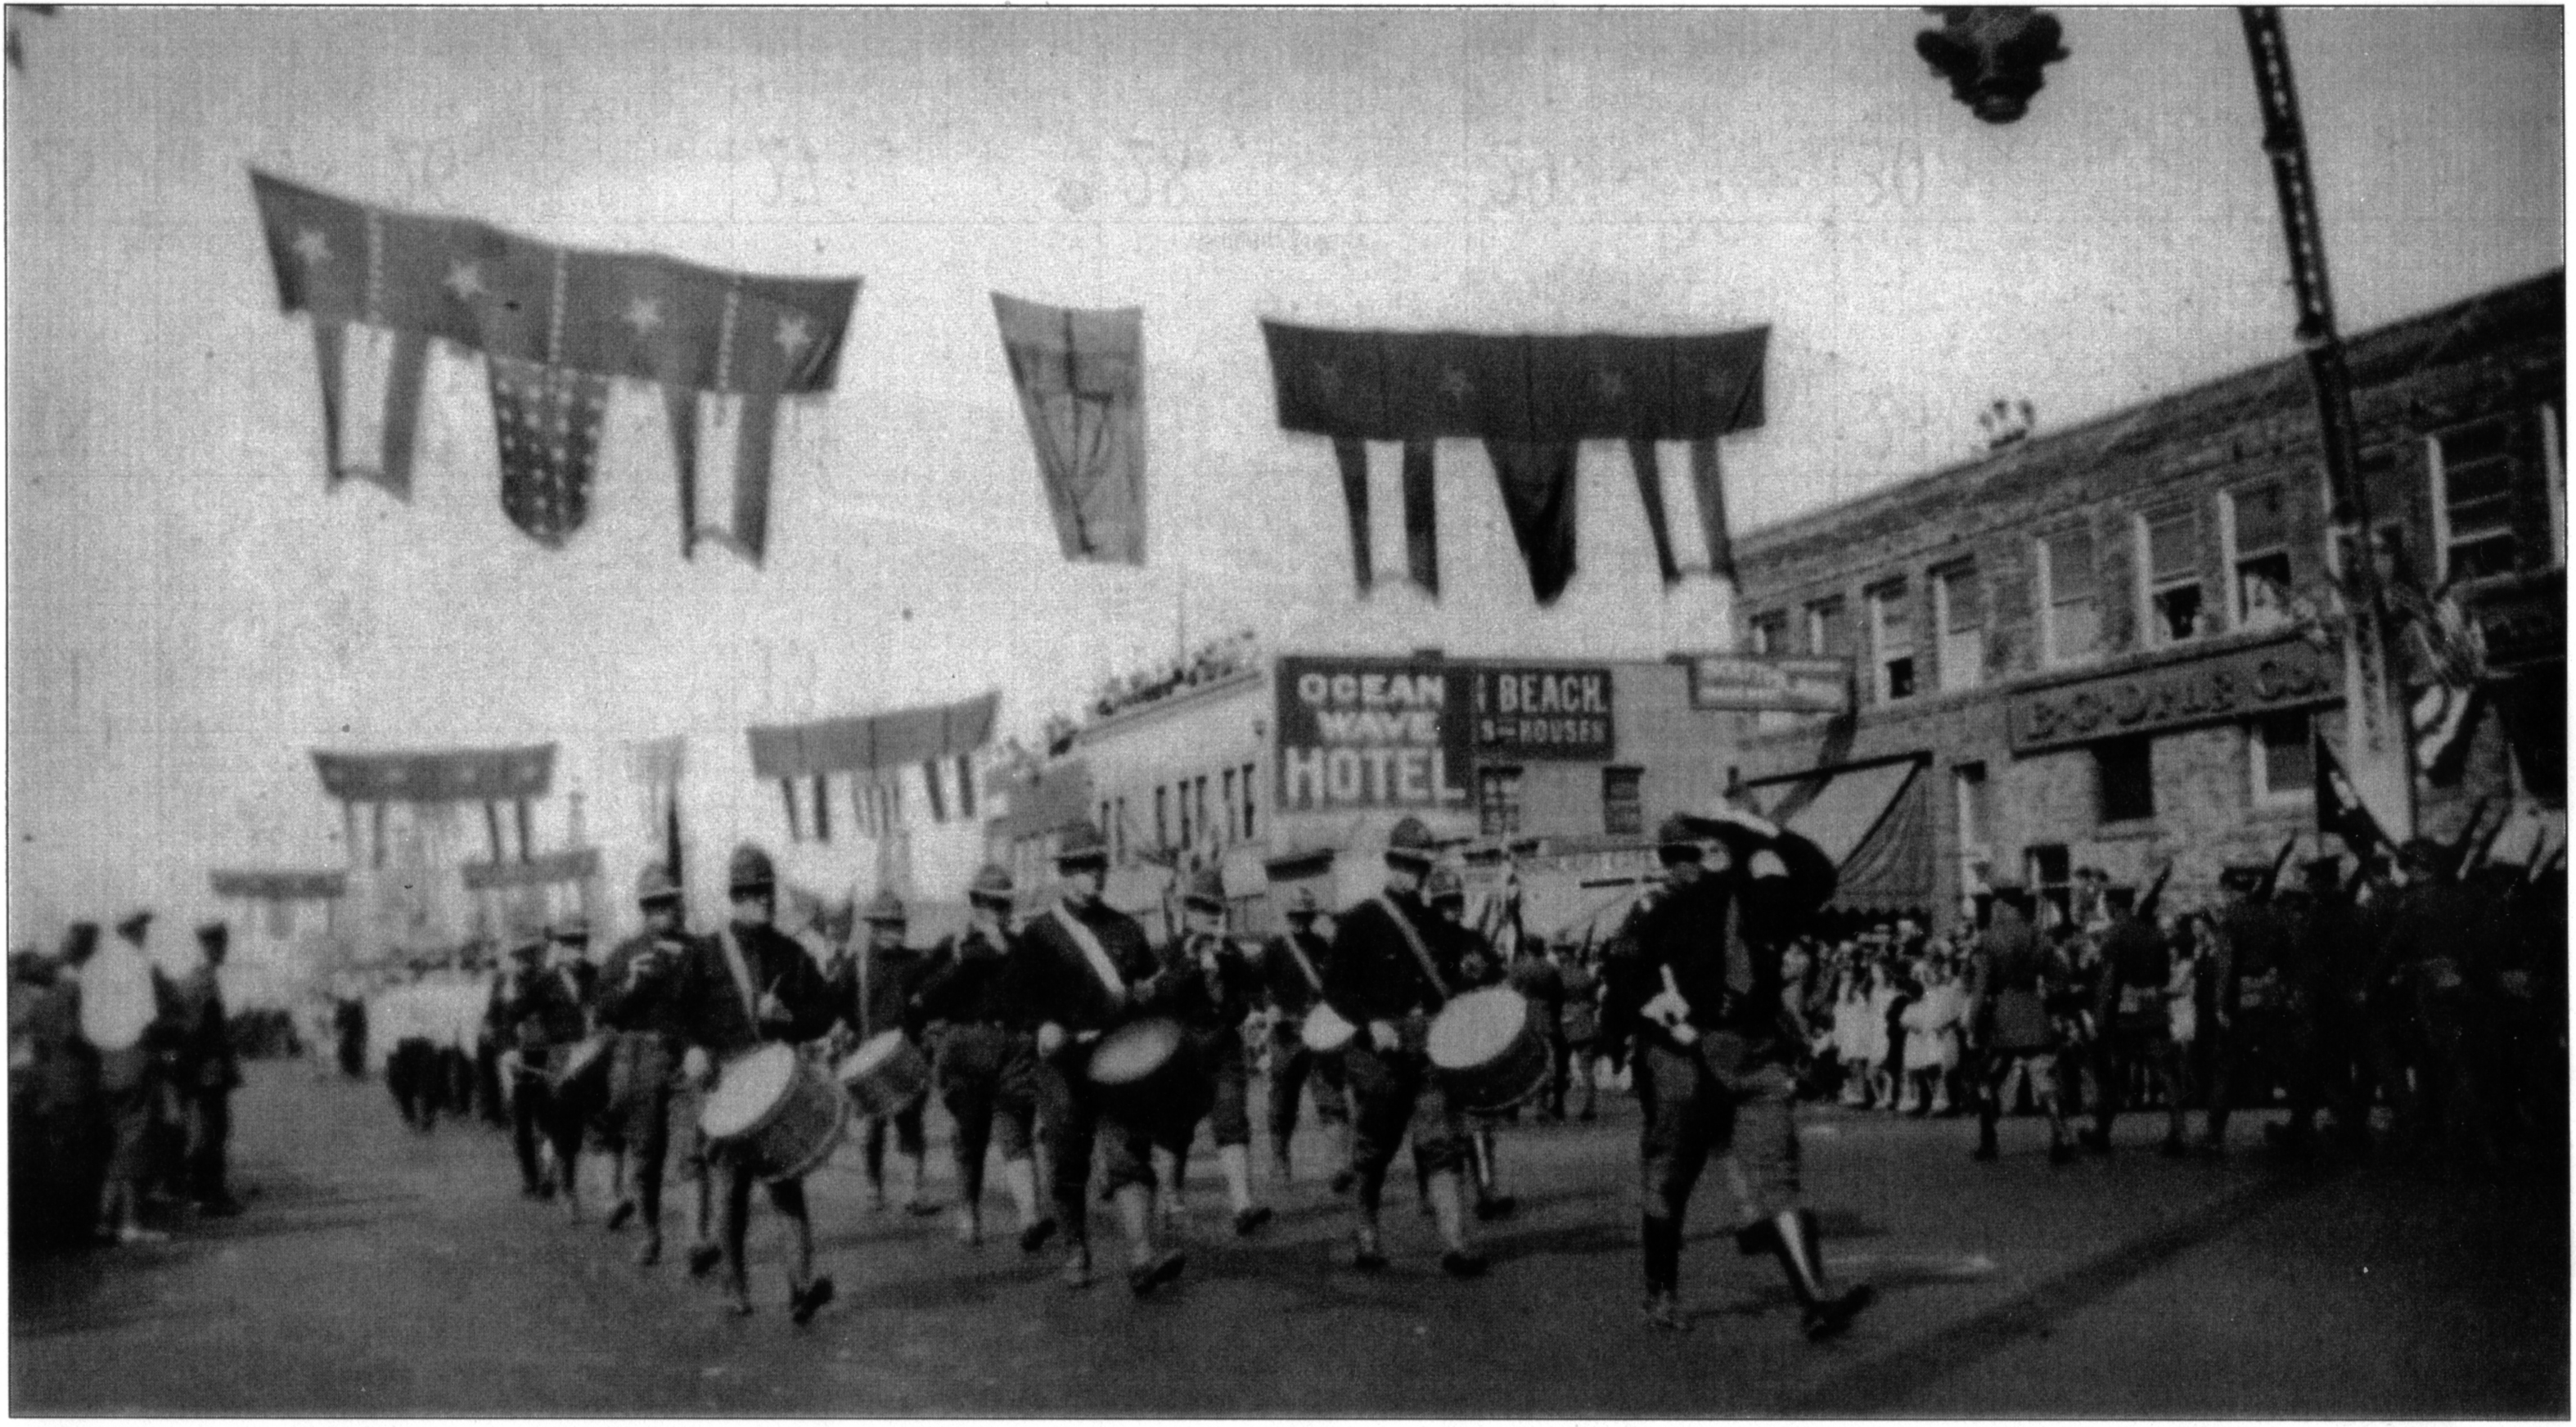 Huntington Beach 4th of July Parade circa 1930